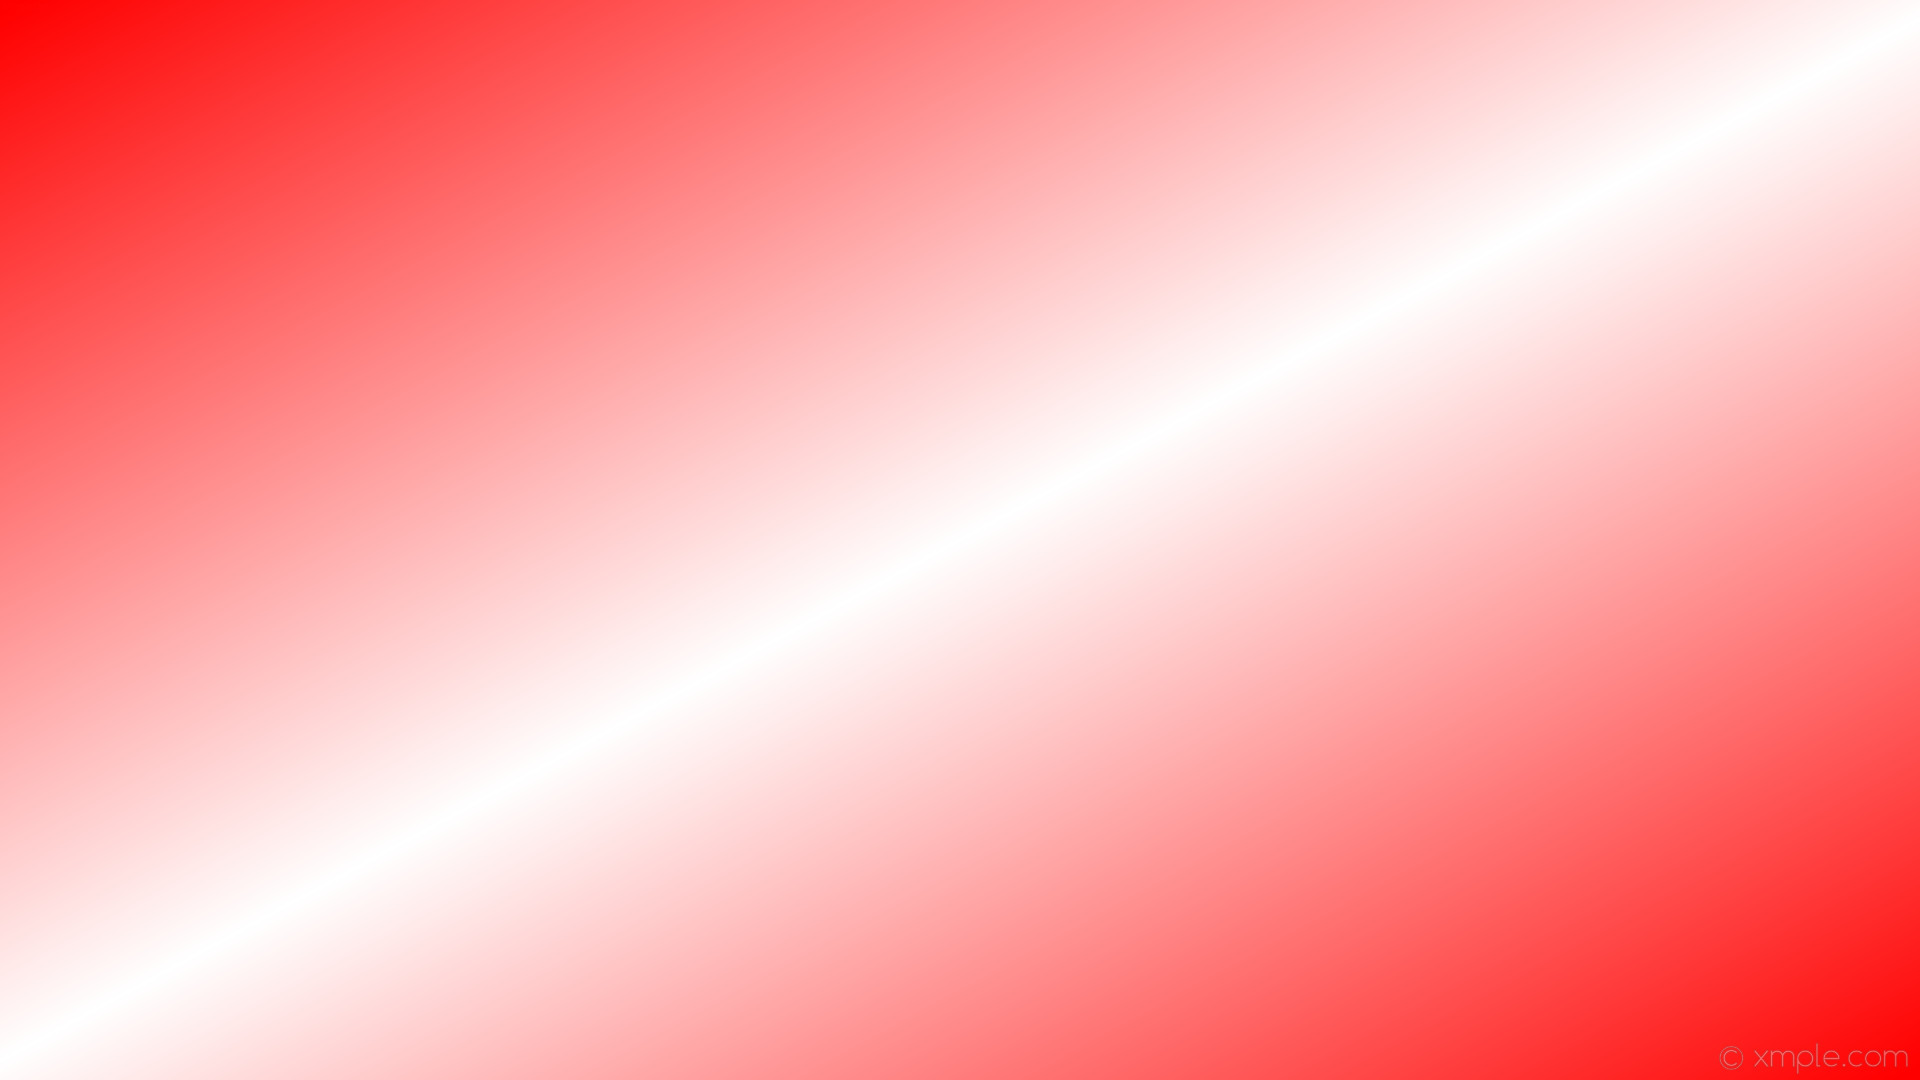 1920x1080 wallpaper linear red gradient white highlight #ff0000 #ffffff 330° 50%